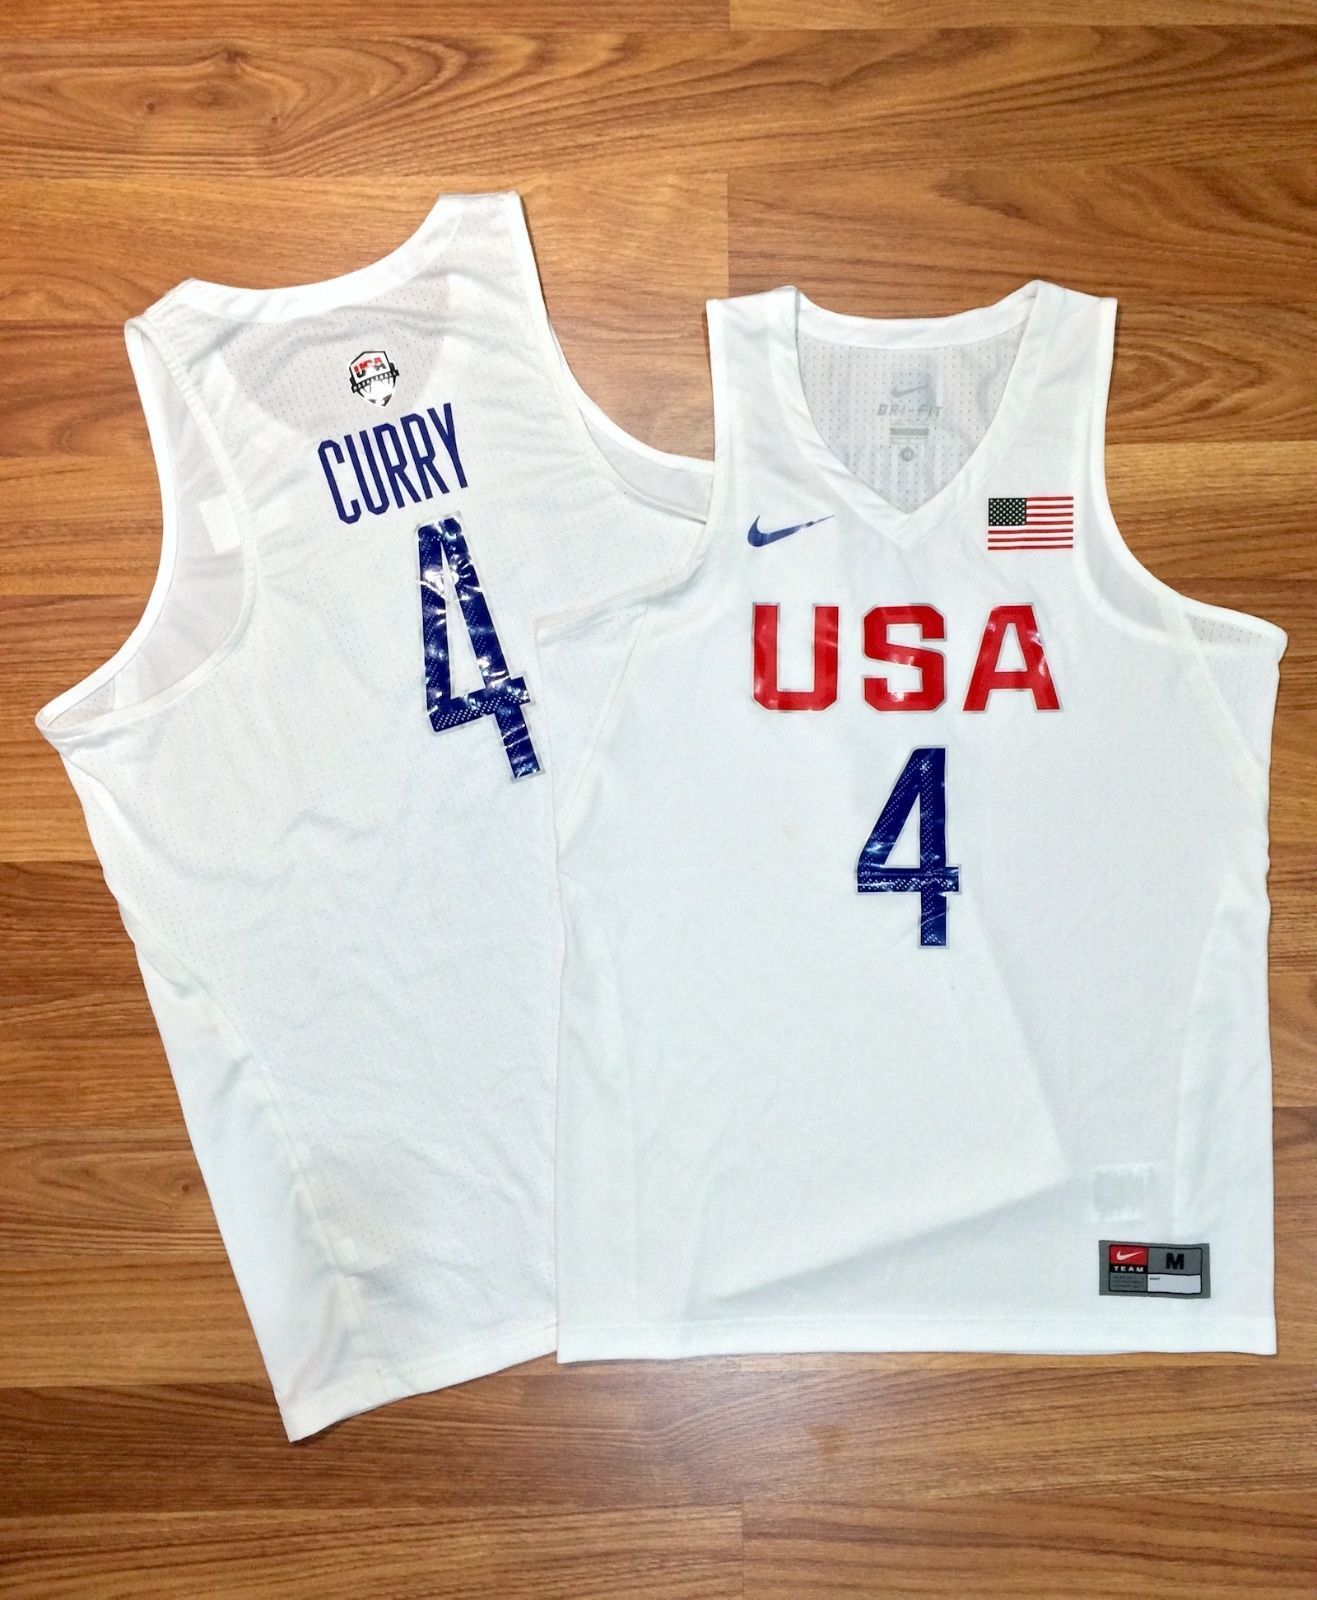 factory price 37243 1e9fe Steph Curry USA Basketball Jersey Beijing Olympics 2016 Nike ...